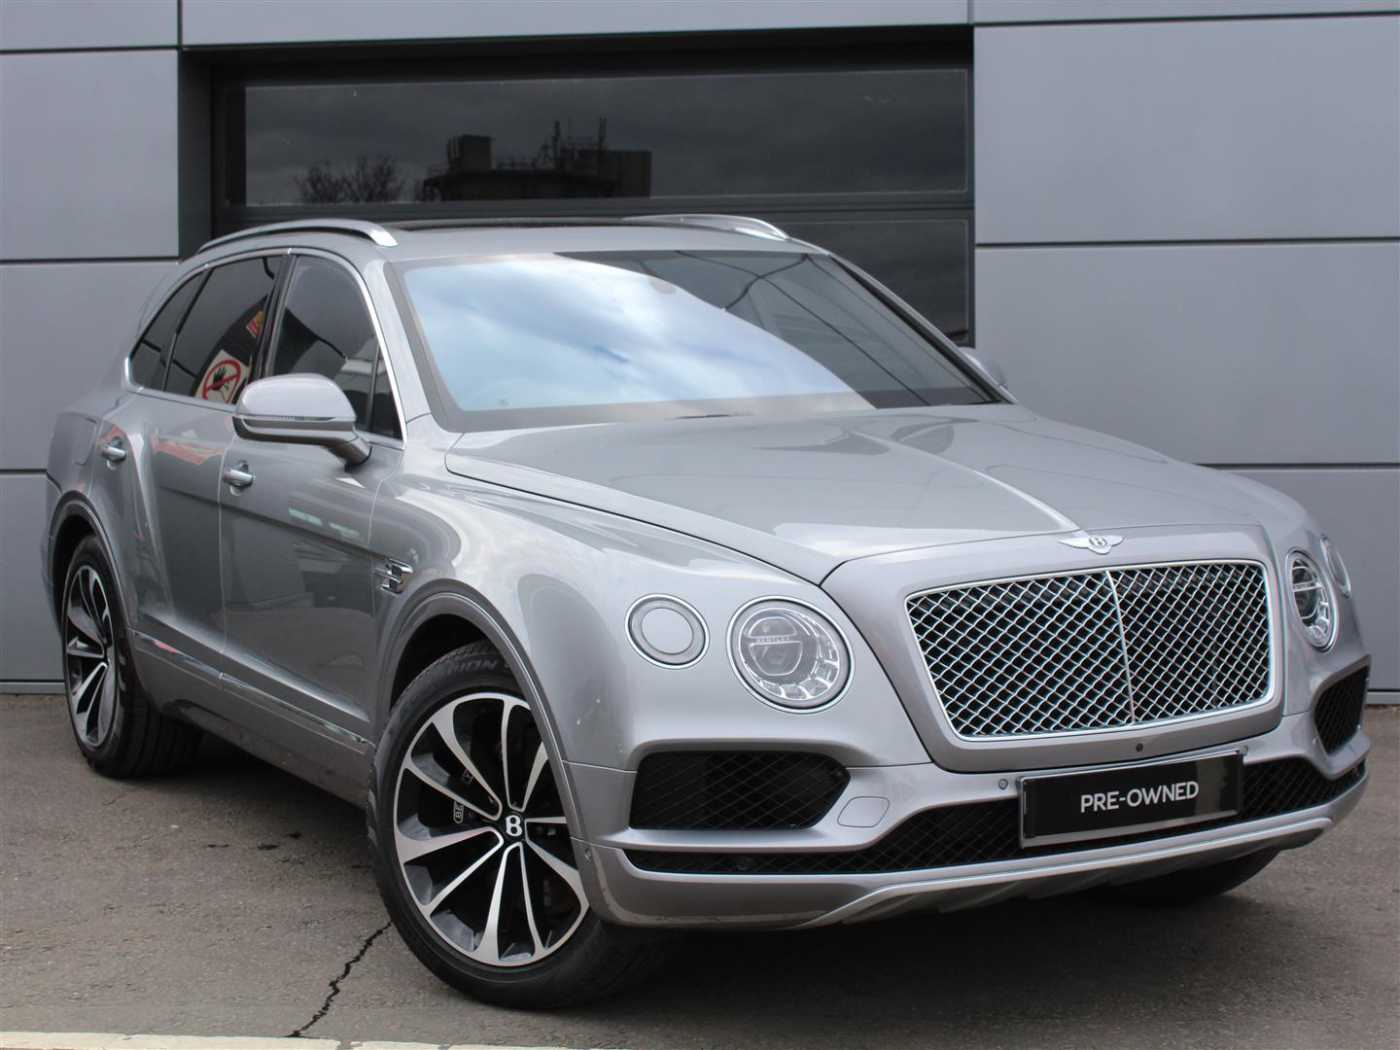 pre sale owned car for hd cool bentley wallpaper